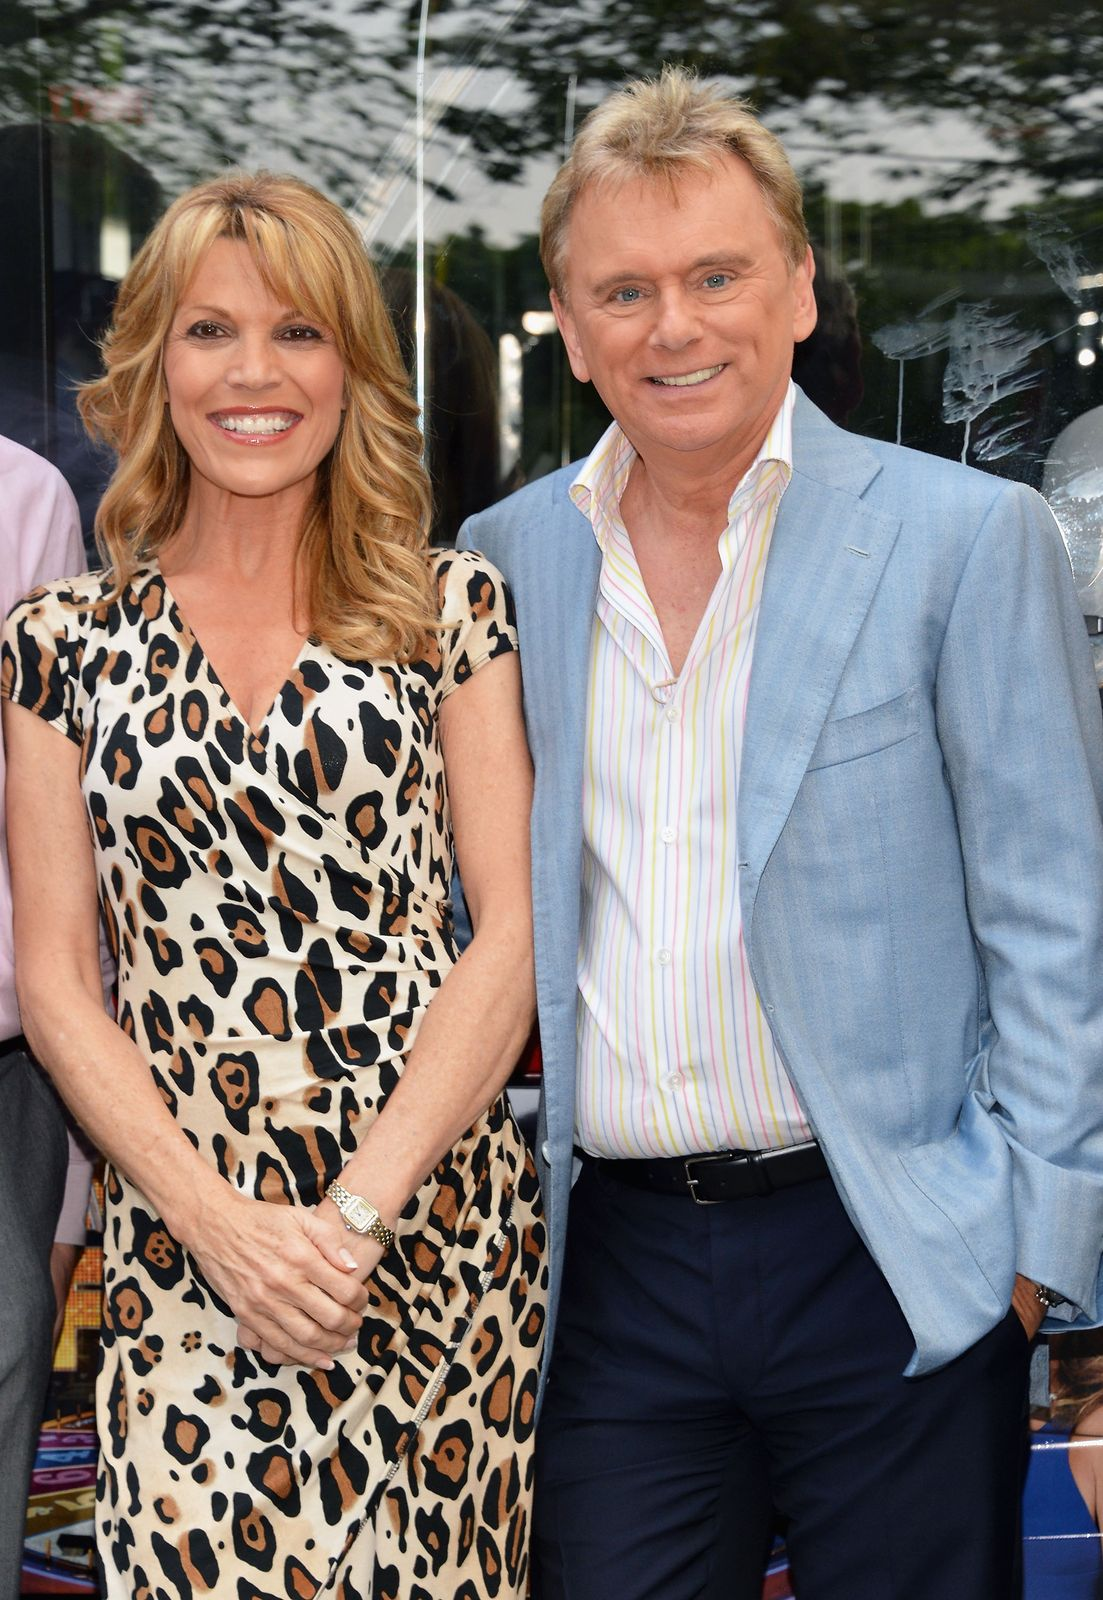 Vanna White and Pat Sajak are honored by Gray Line New York's Ride Of Fame Campaign in Central Park on May 23, 2012, in New York City | Photo: Slaven Vlasic/Getty Images